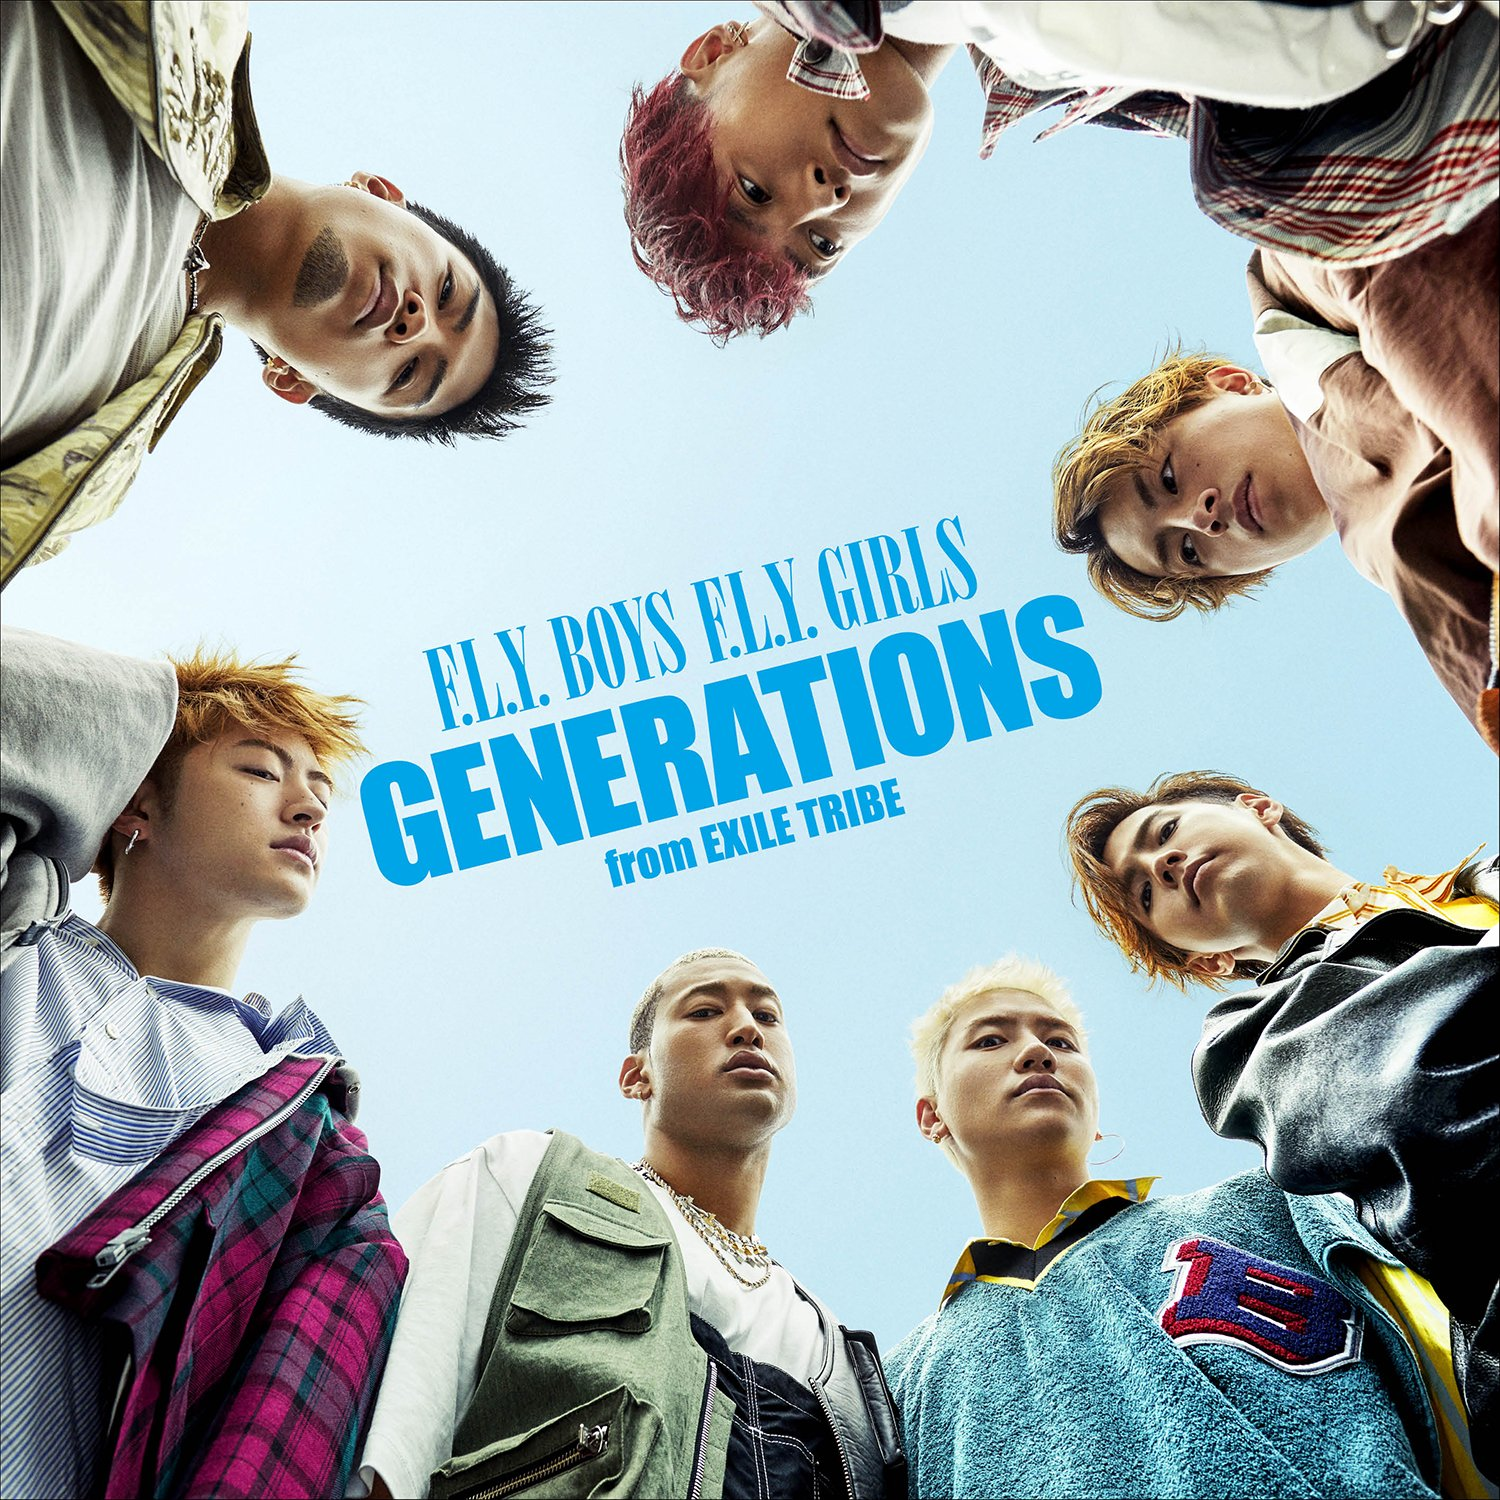 F.L.Y. BOYS F.L.Y. GIRLS(CD+DVD)(オリジナルポスター/A3サイズ)GENERATIONS from EXILE TRIBE